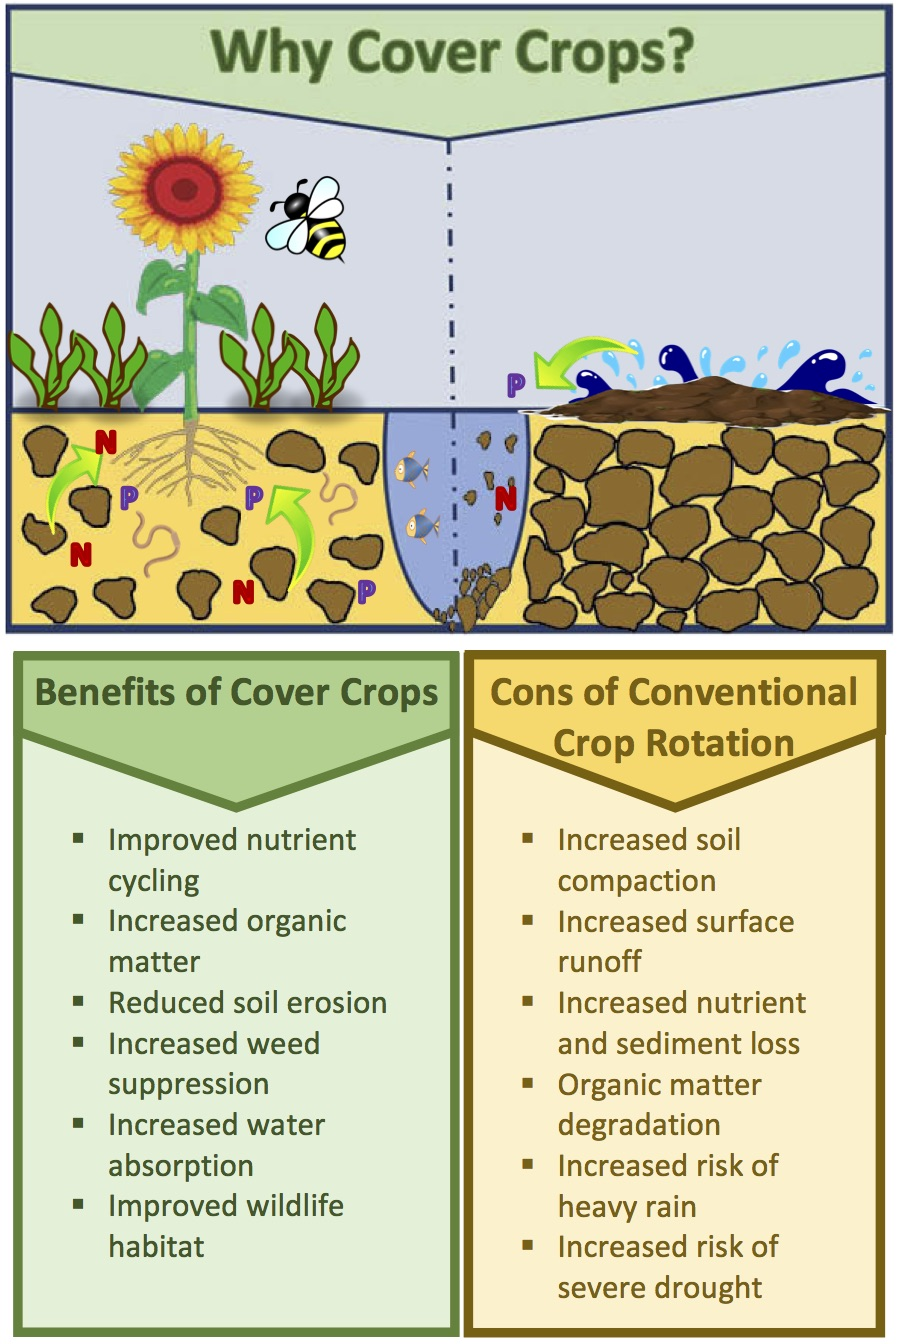 Why-Cover-Crops_v4.jpg